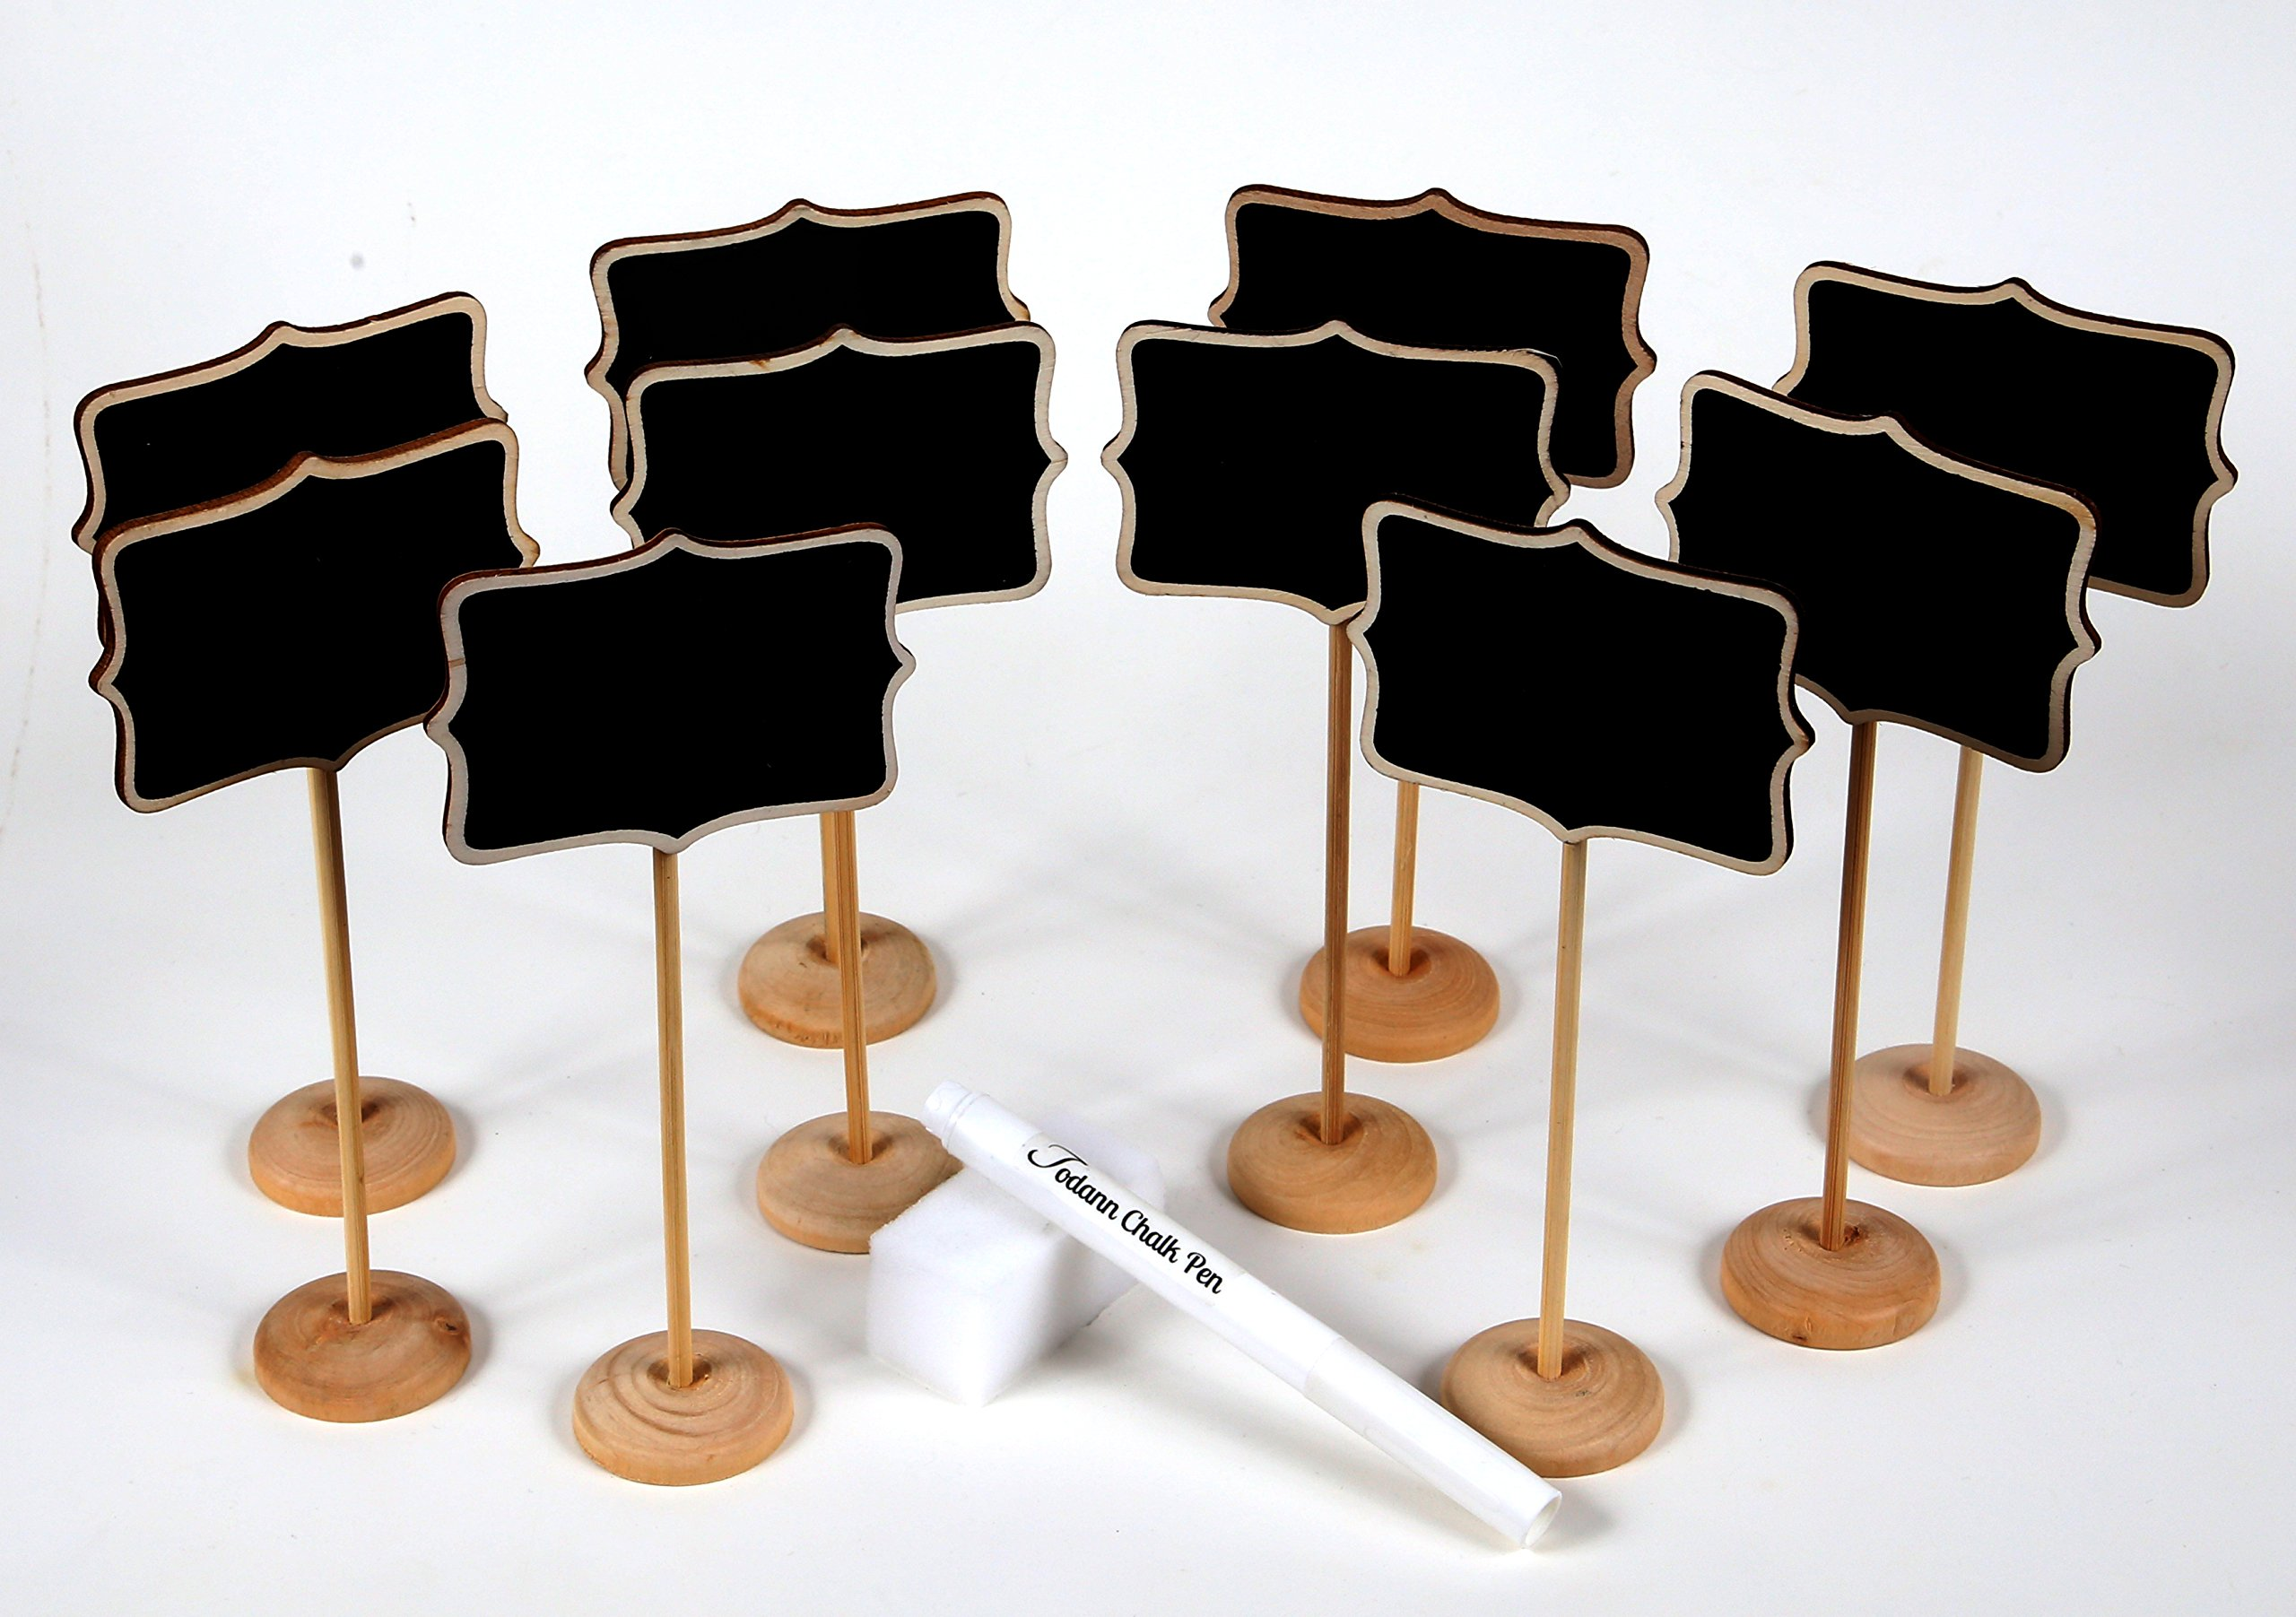 10 Piece Mini Rectangle Chalkboard Stands / Signs, White Liquid Chalk Pen & Erasing Sponge, use for Weddings, Parties, Table Numbers or Place Cards by Todann (Image #5)